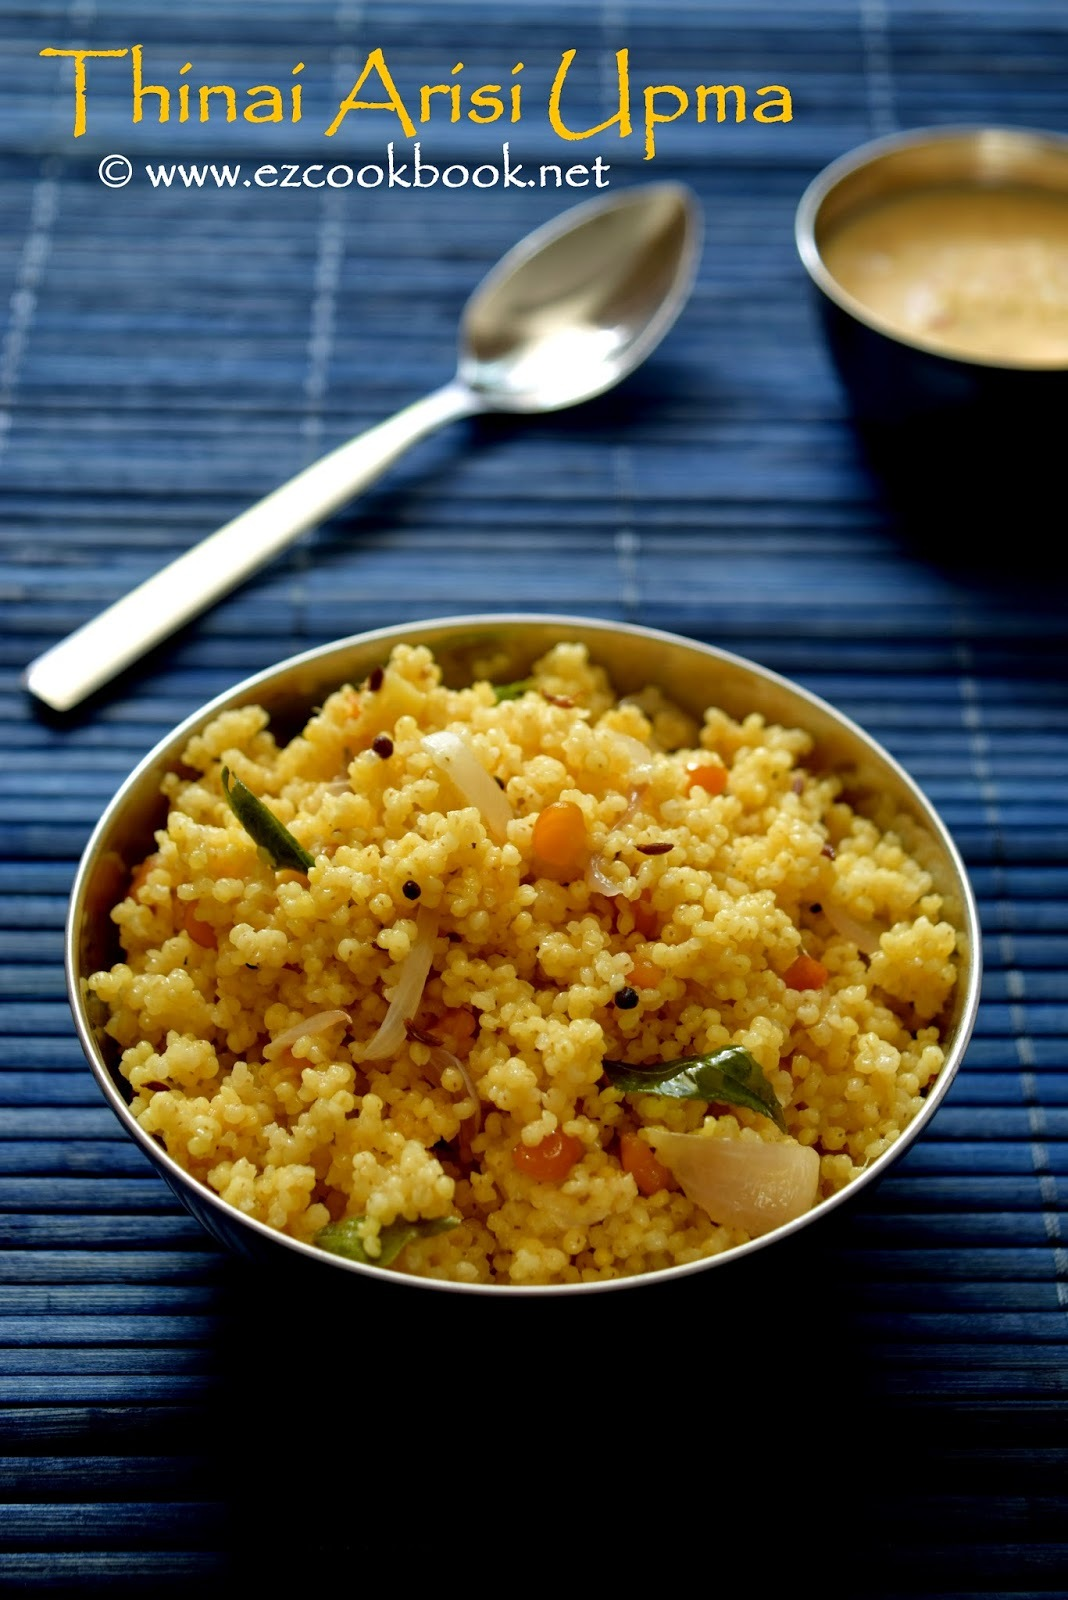 Thinai Arisi Upma | How To Make Foxtail Millet Upma Recipe